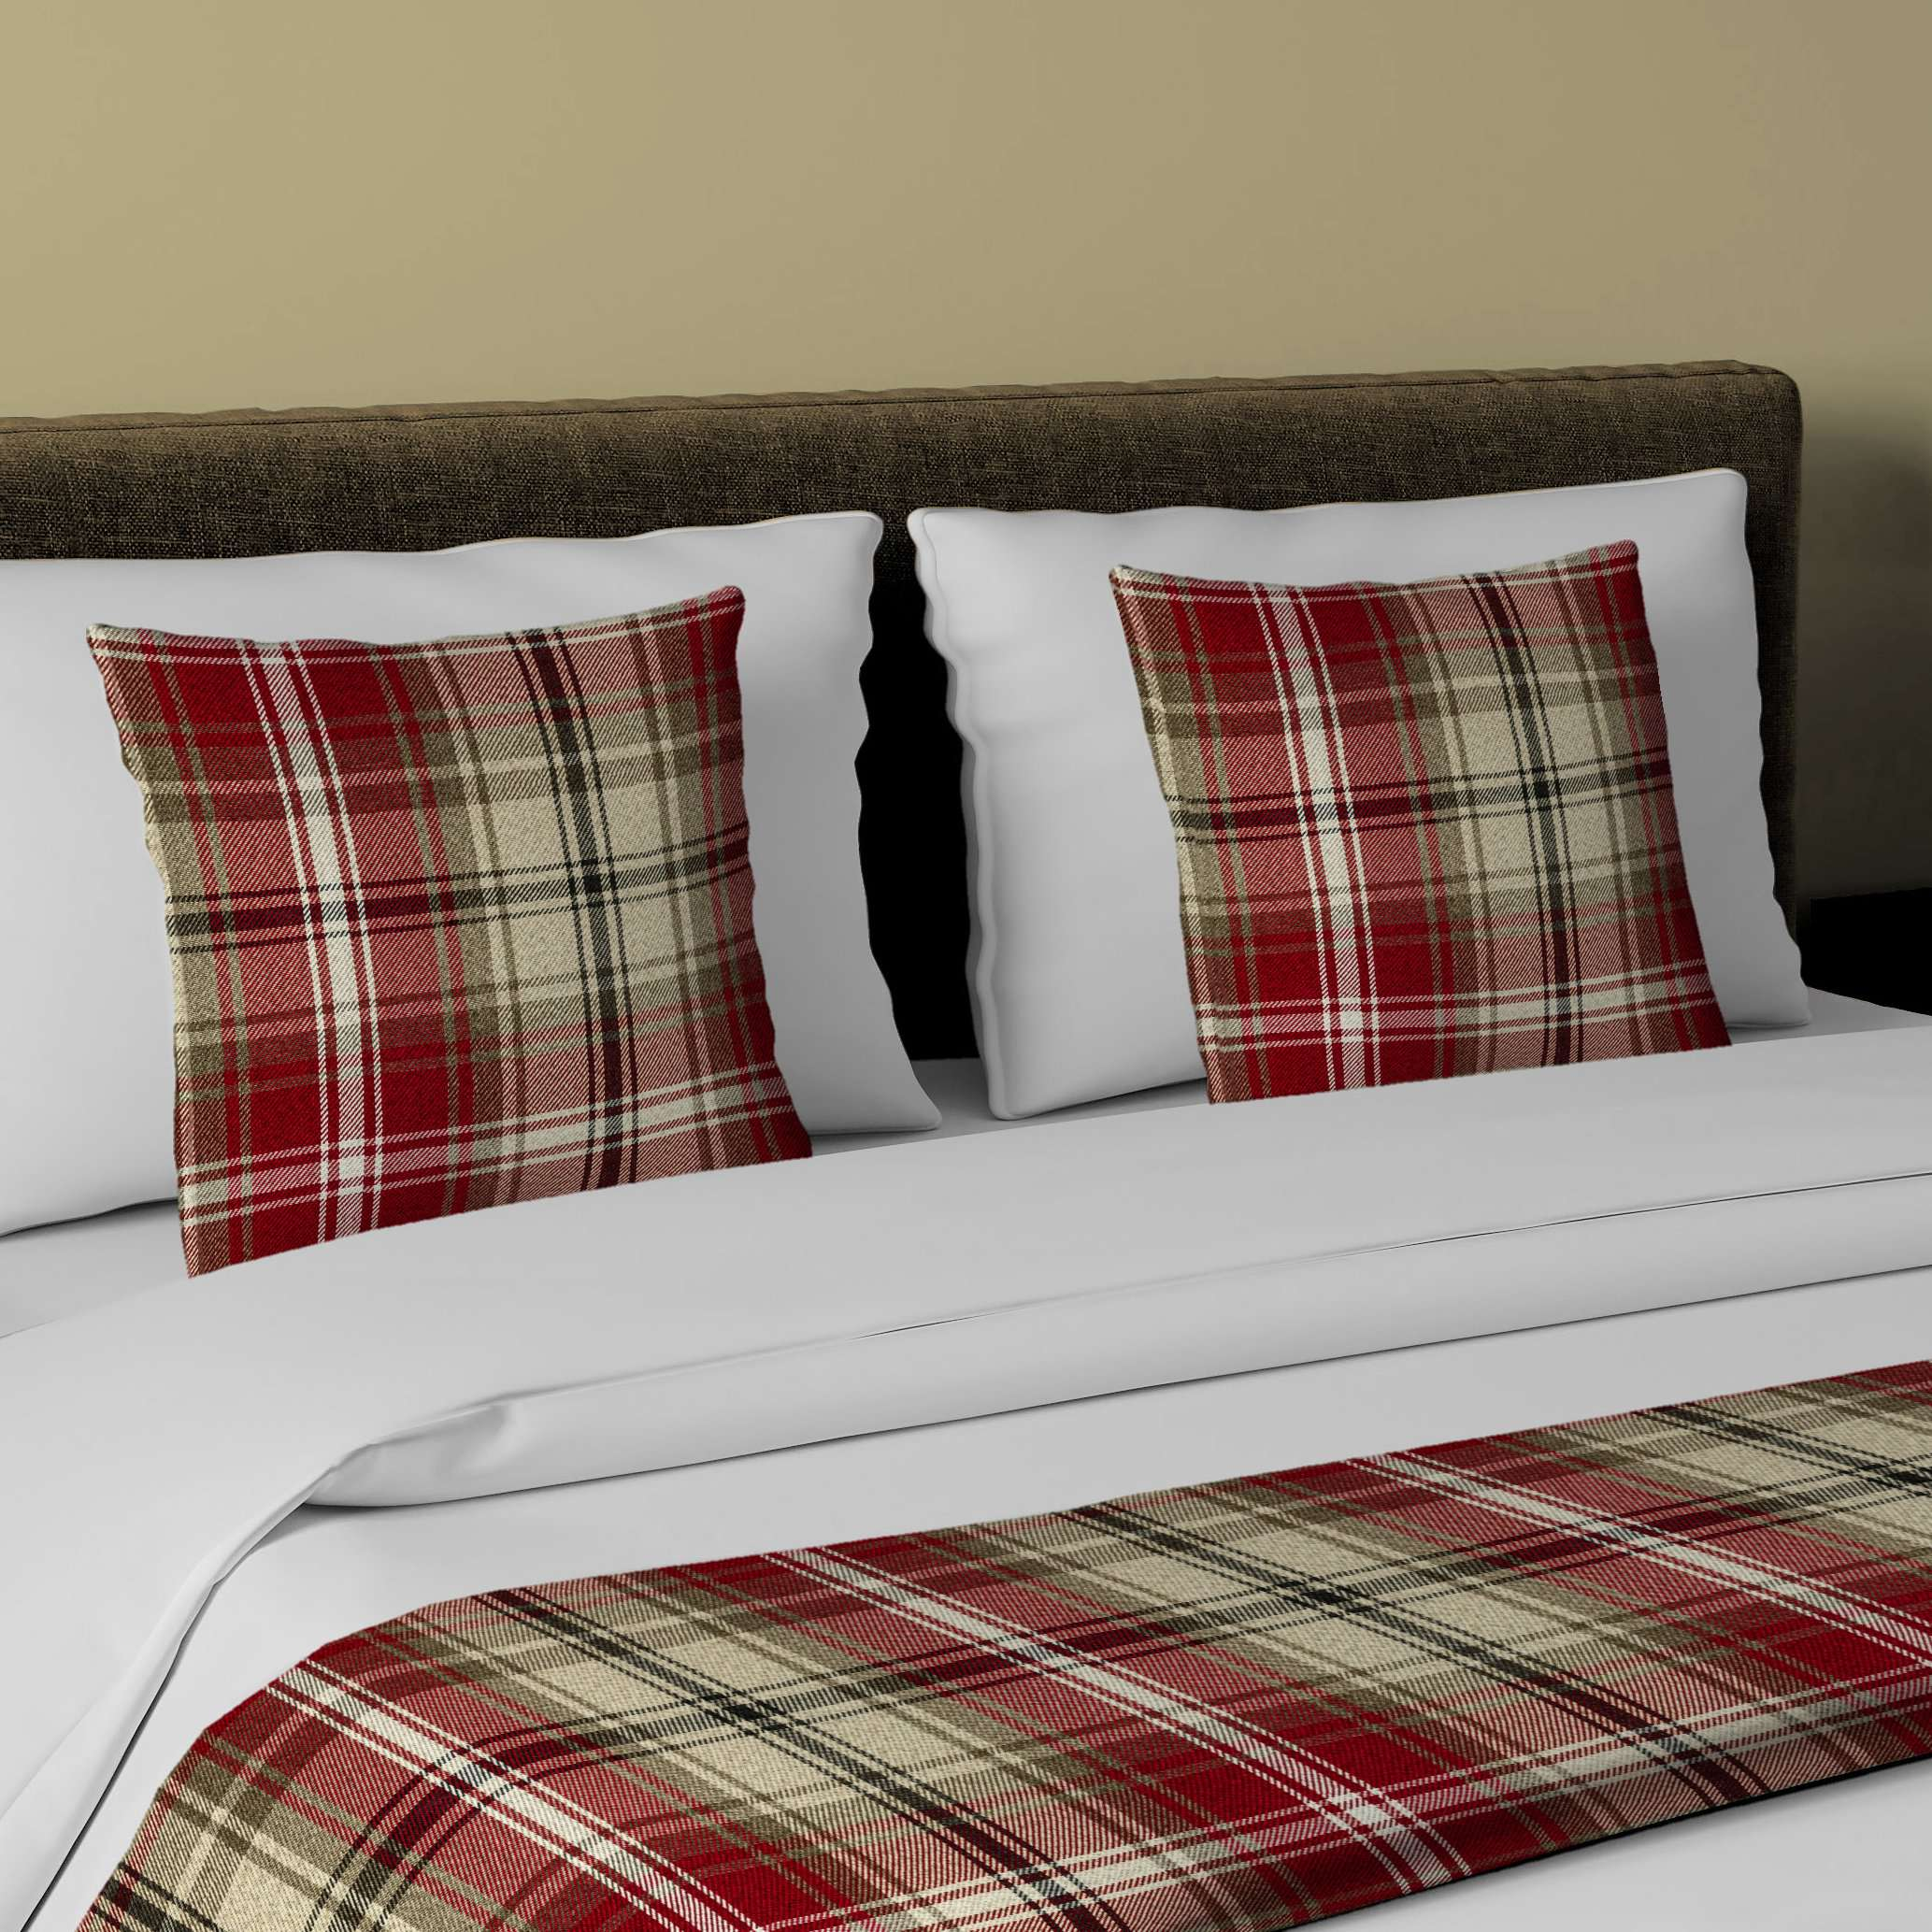 McAlister Textiles Angus Red + White Tartan Bedding Set Bedding Set Runner (50x240cm) + 2x Cushion Covers